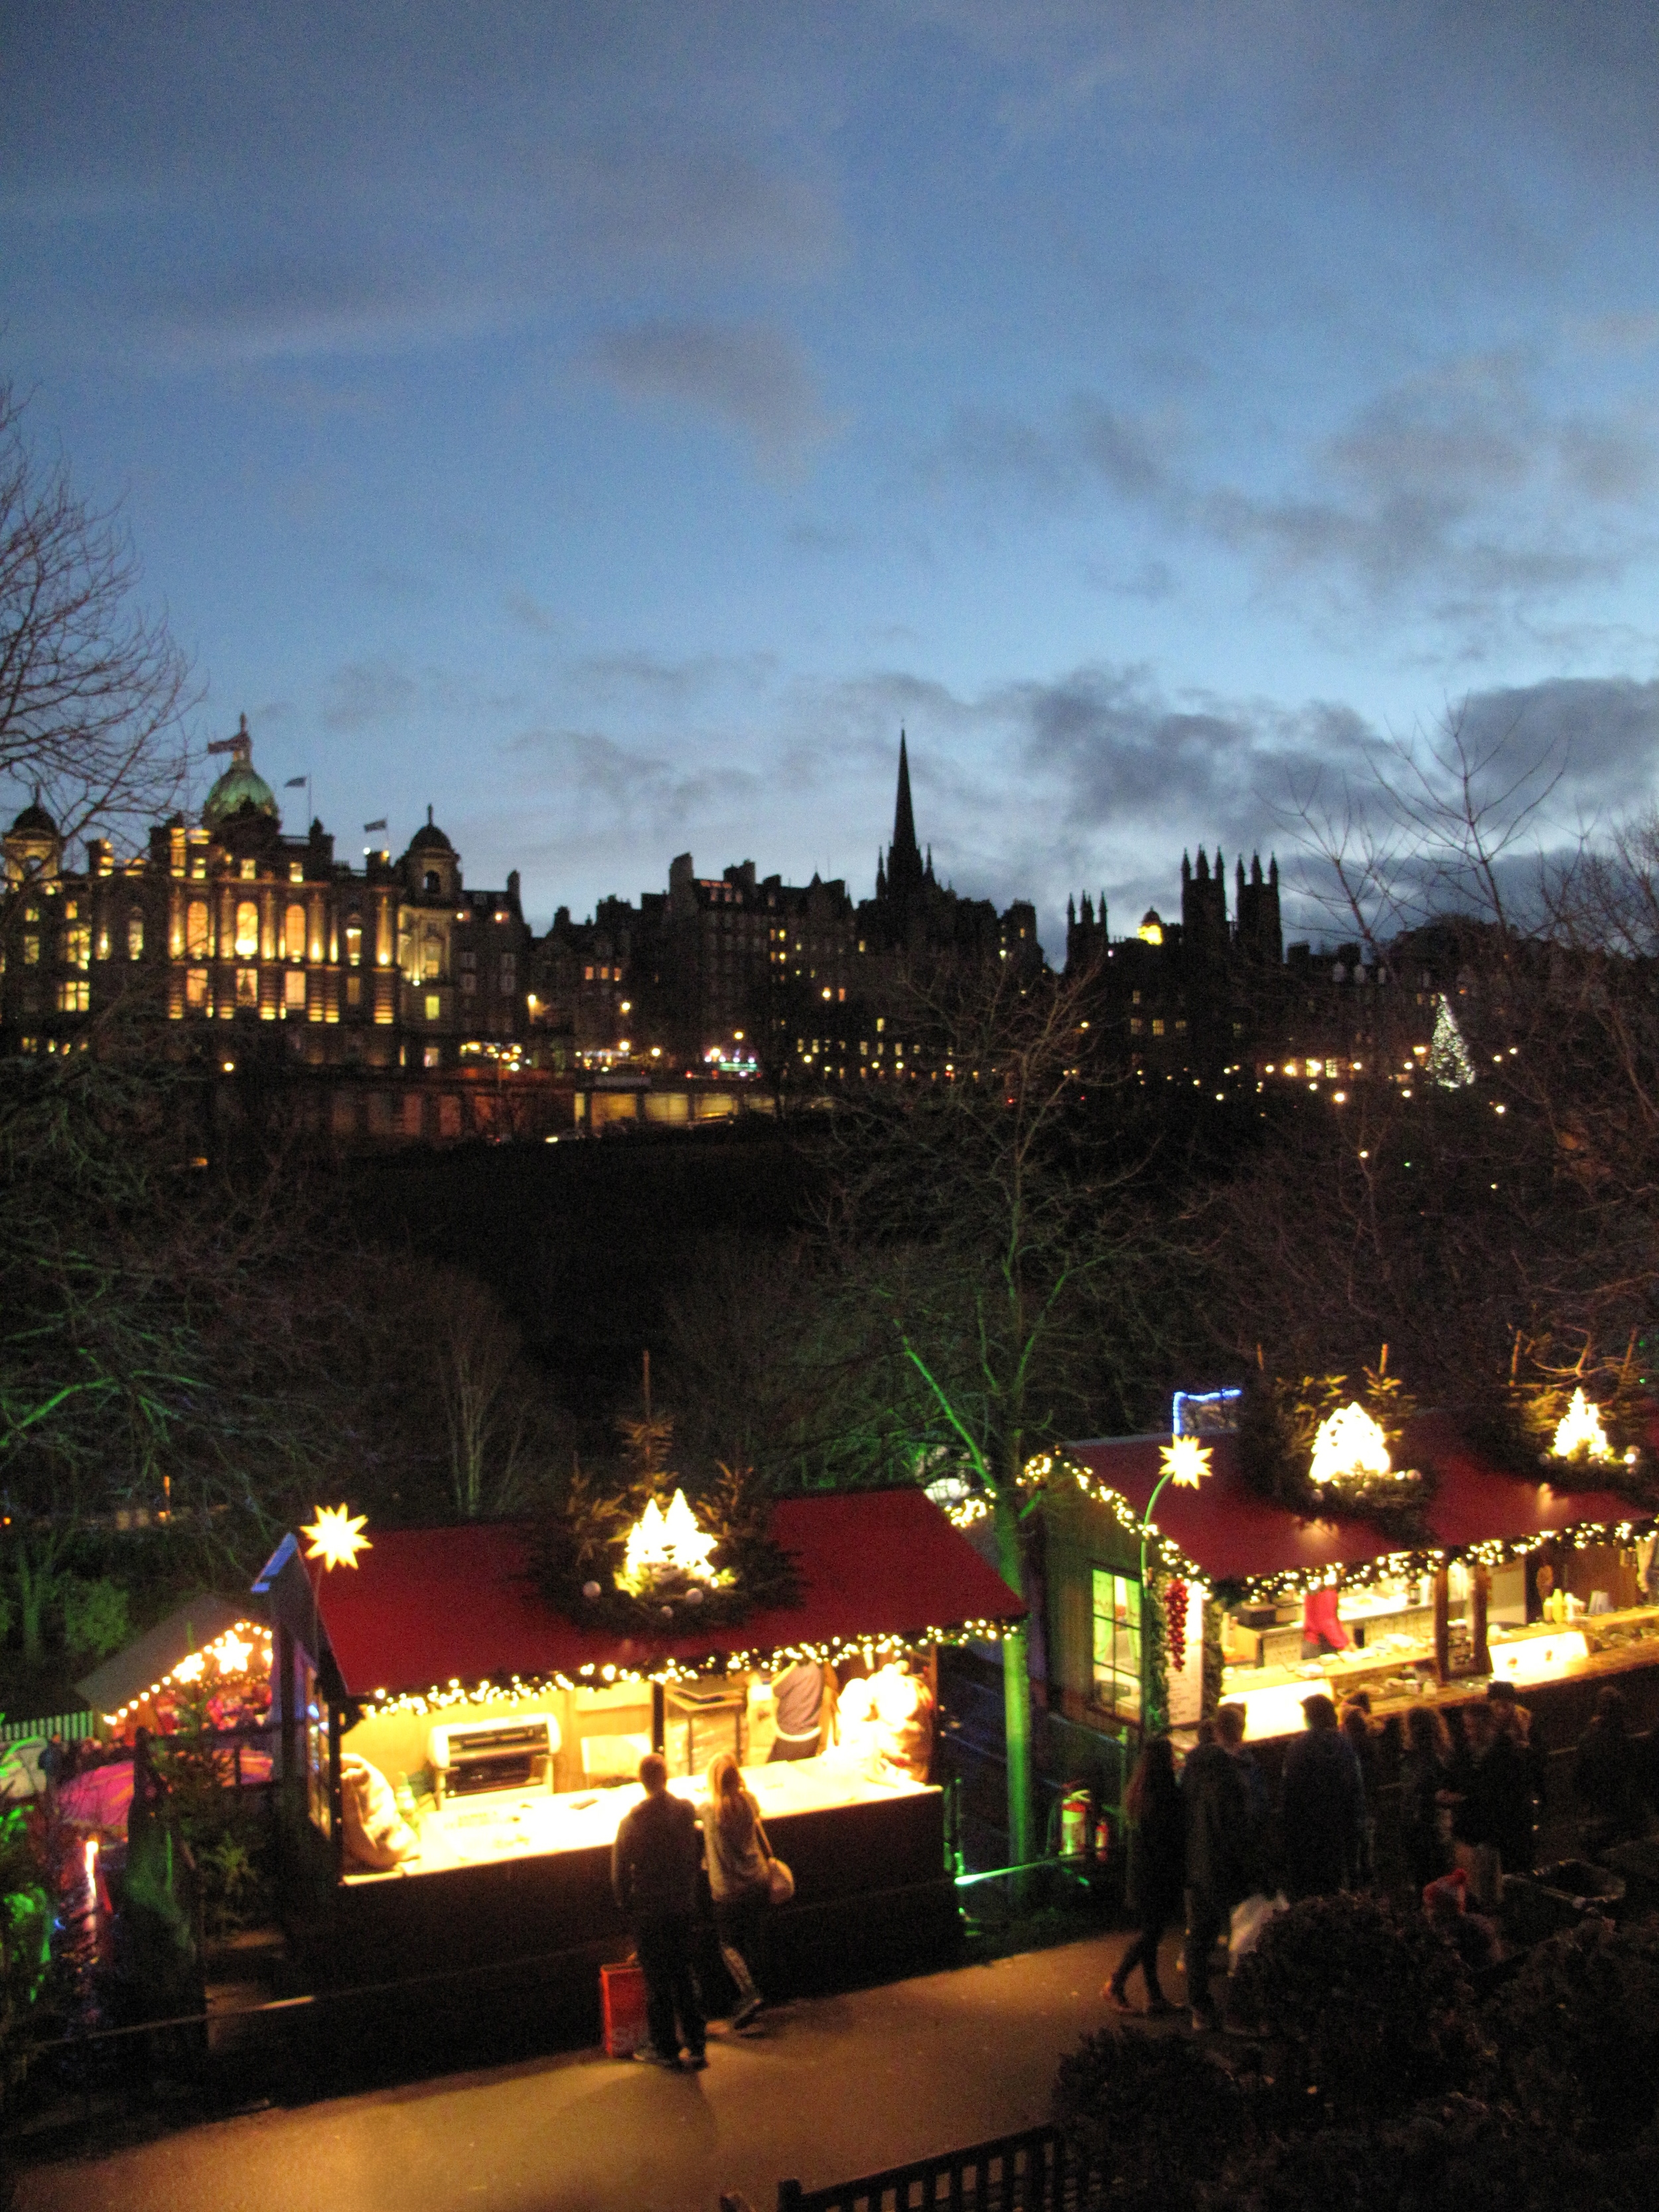 Edinburgh christmas markets in Princes Street gardens - with view of the city at night.